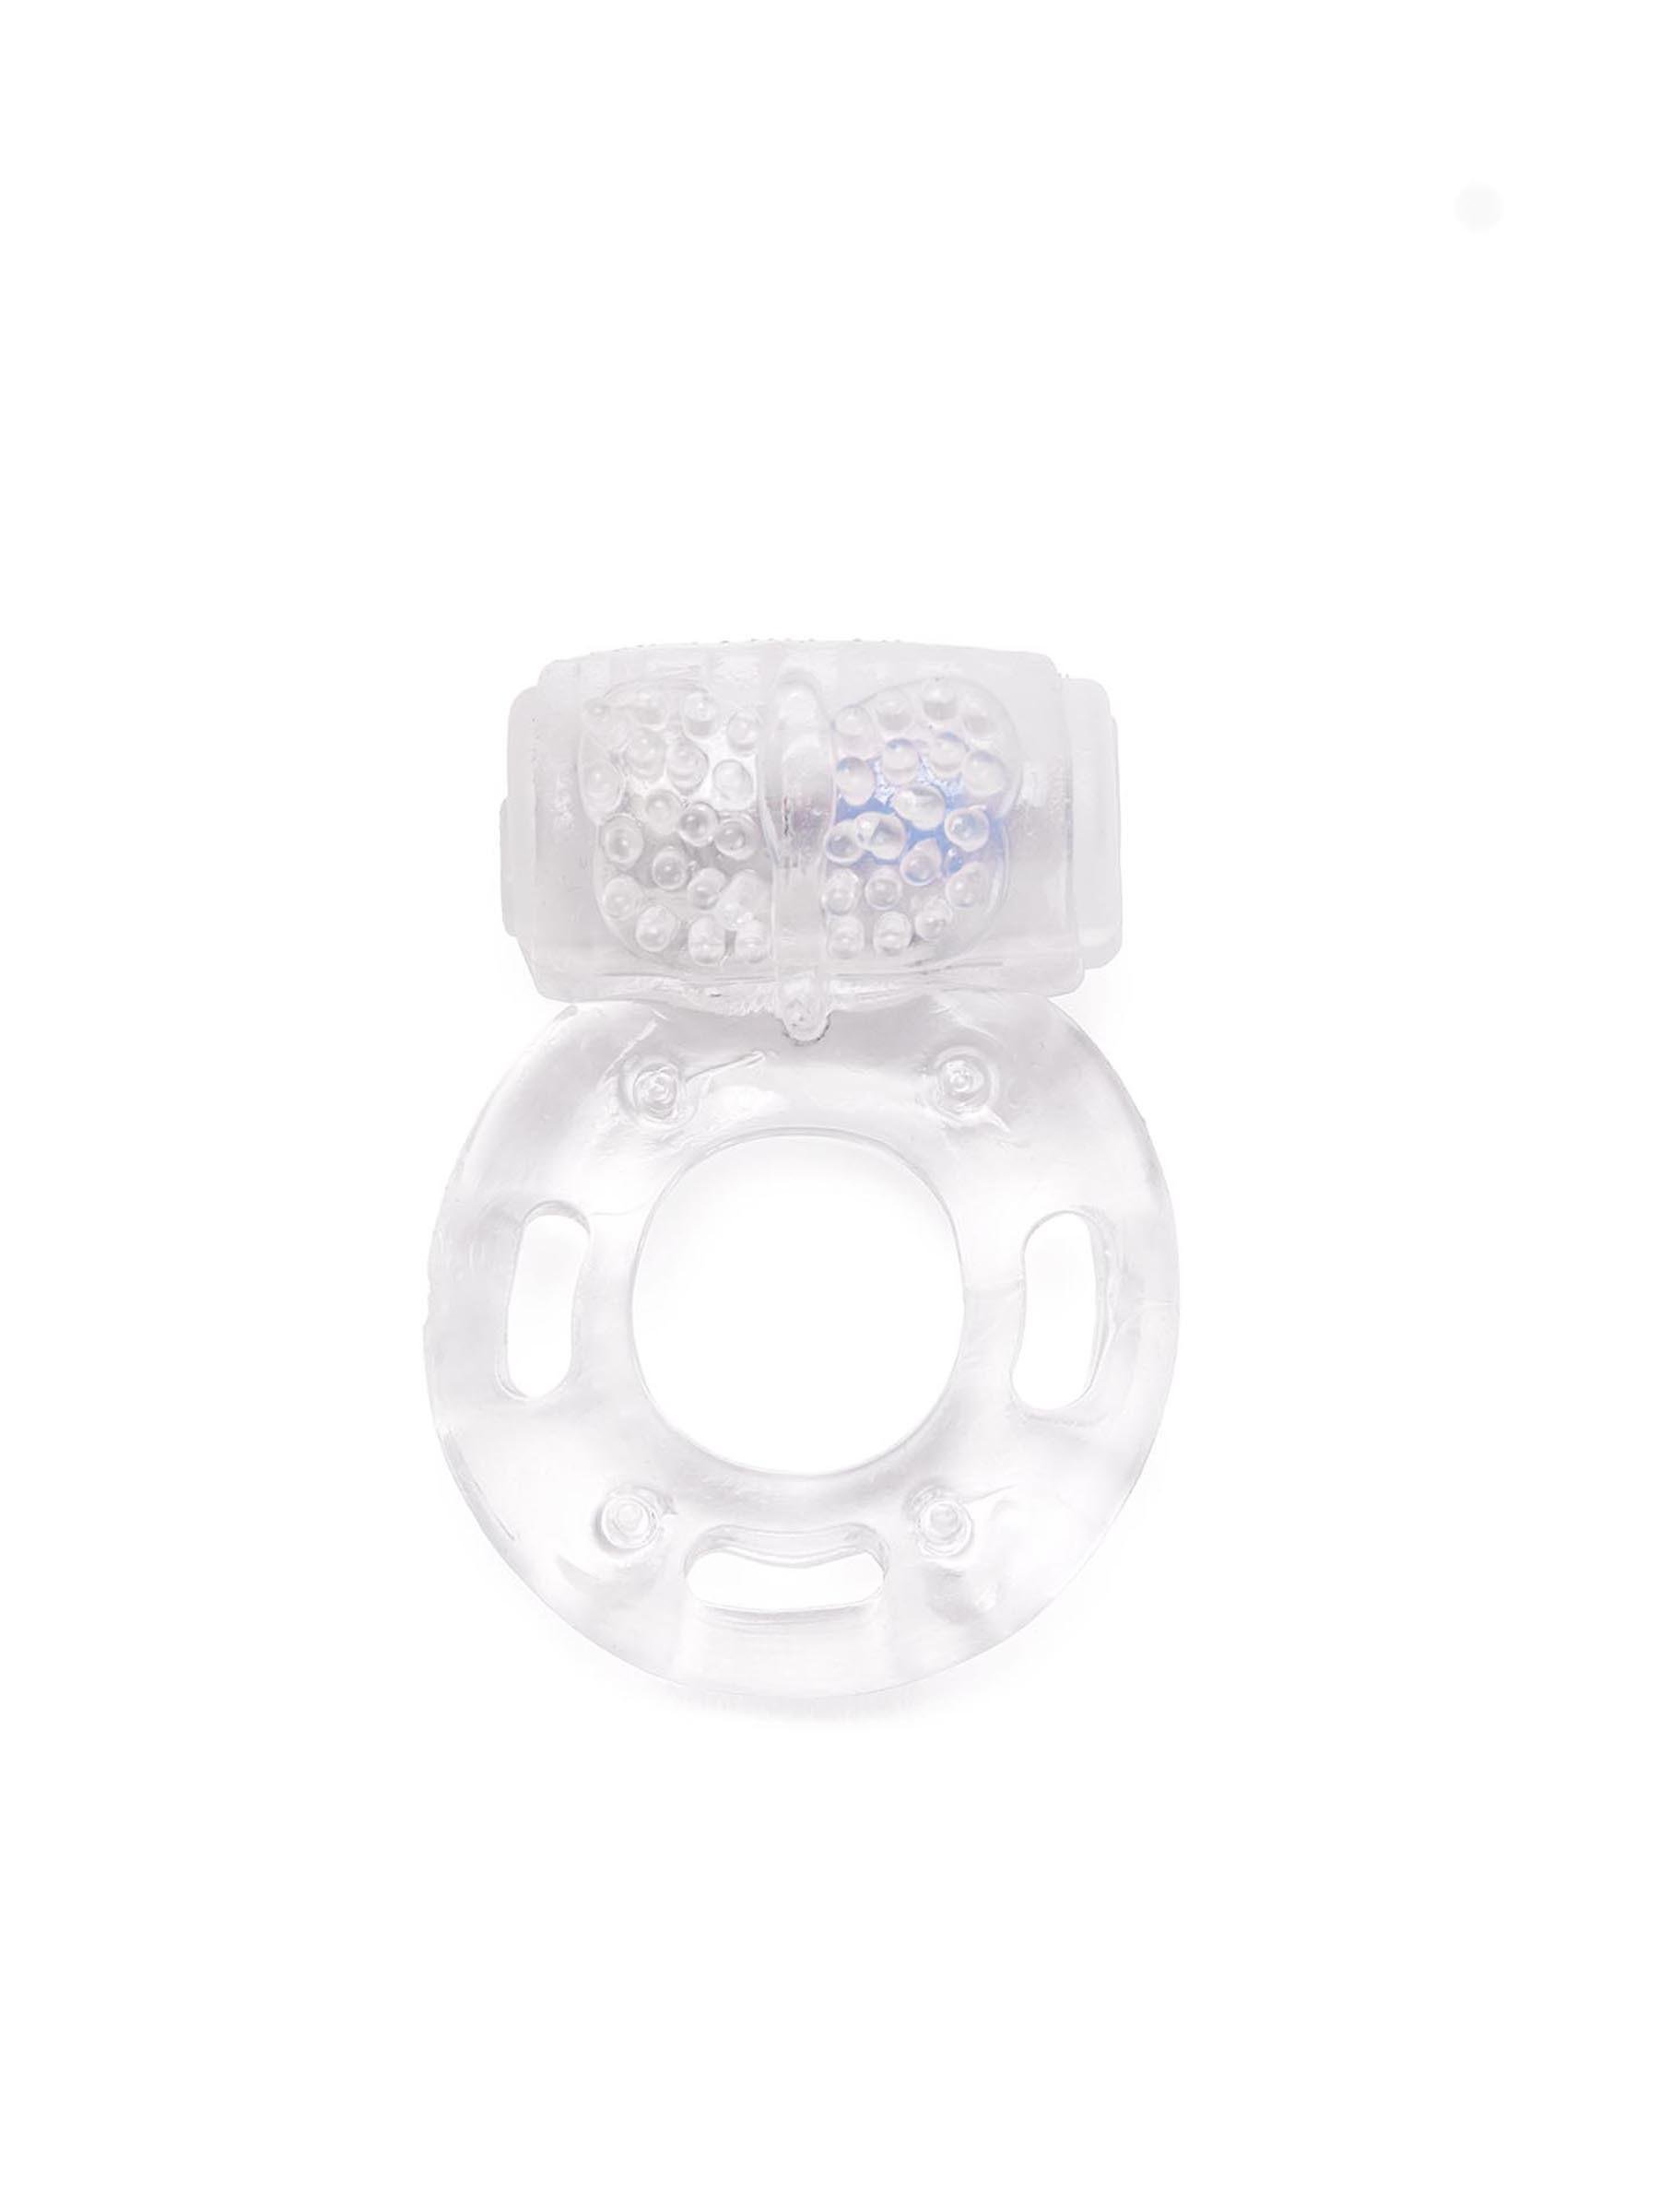 Ann Summers Thick Vibrating Cock Ring (Up), Clear